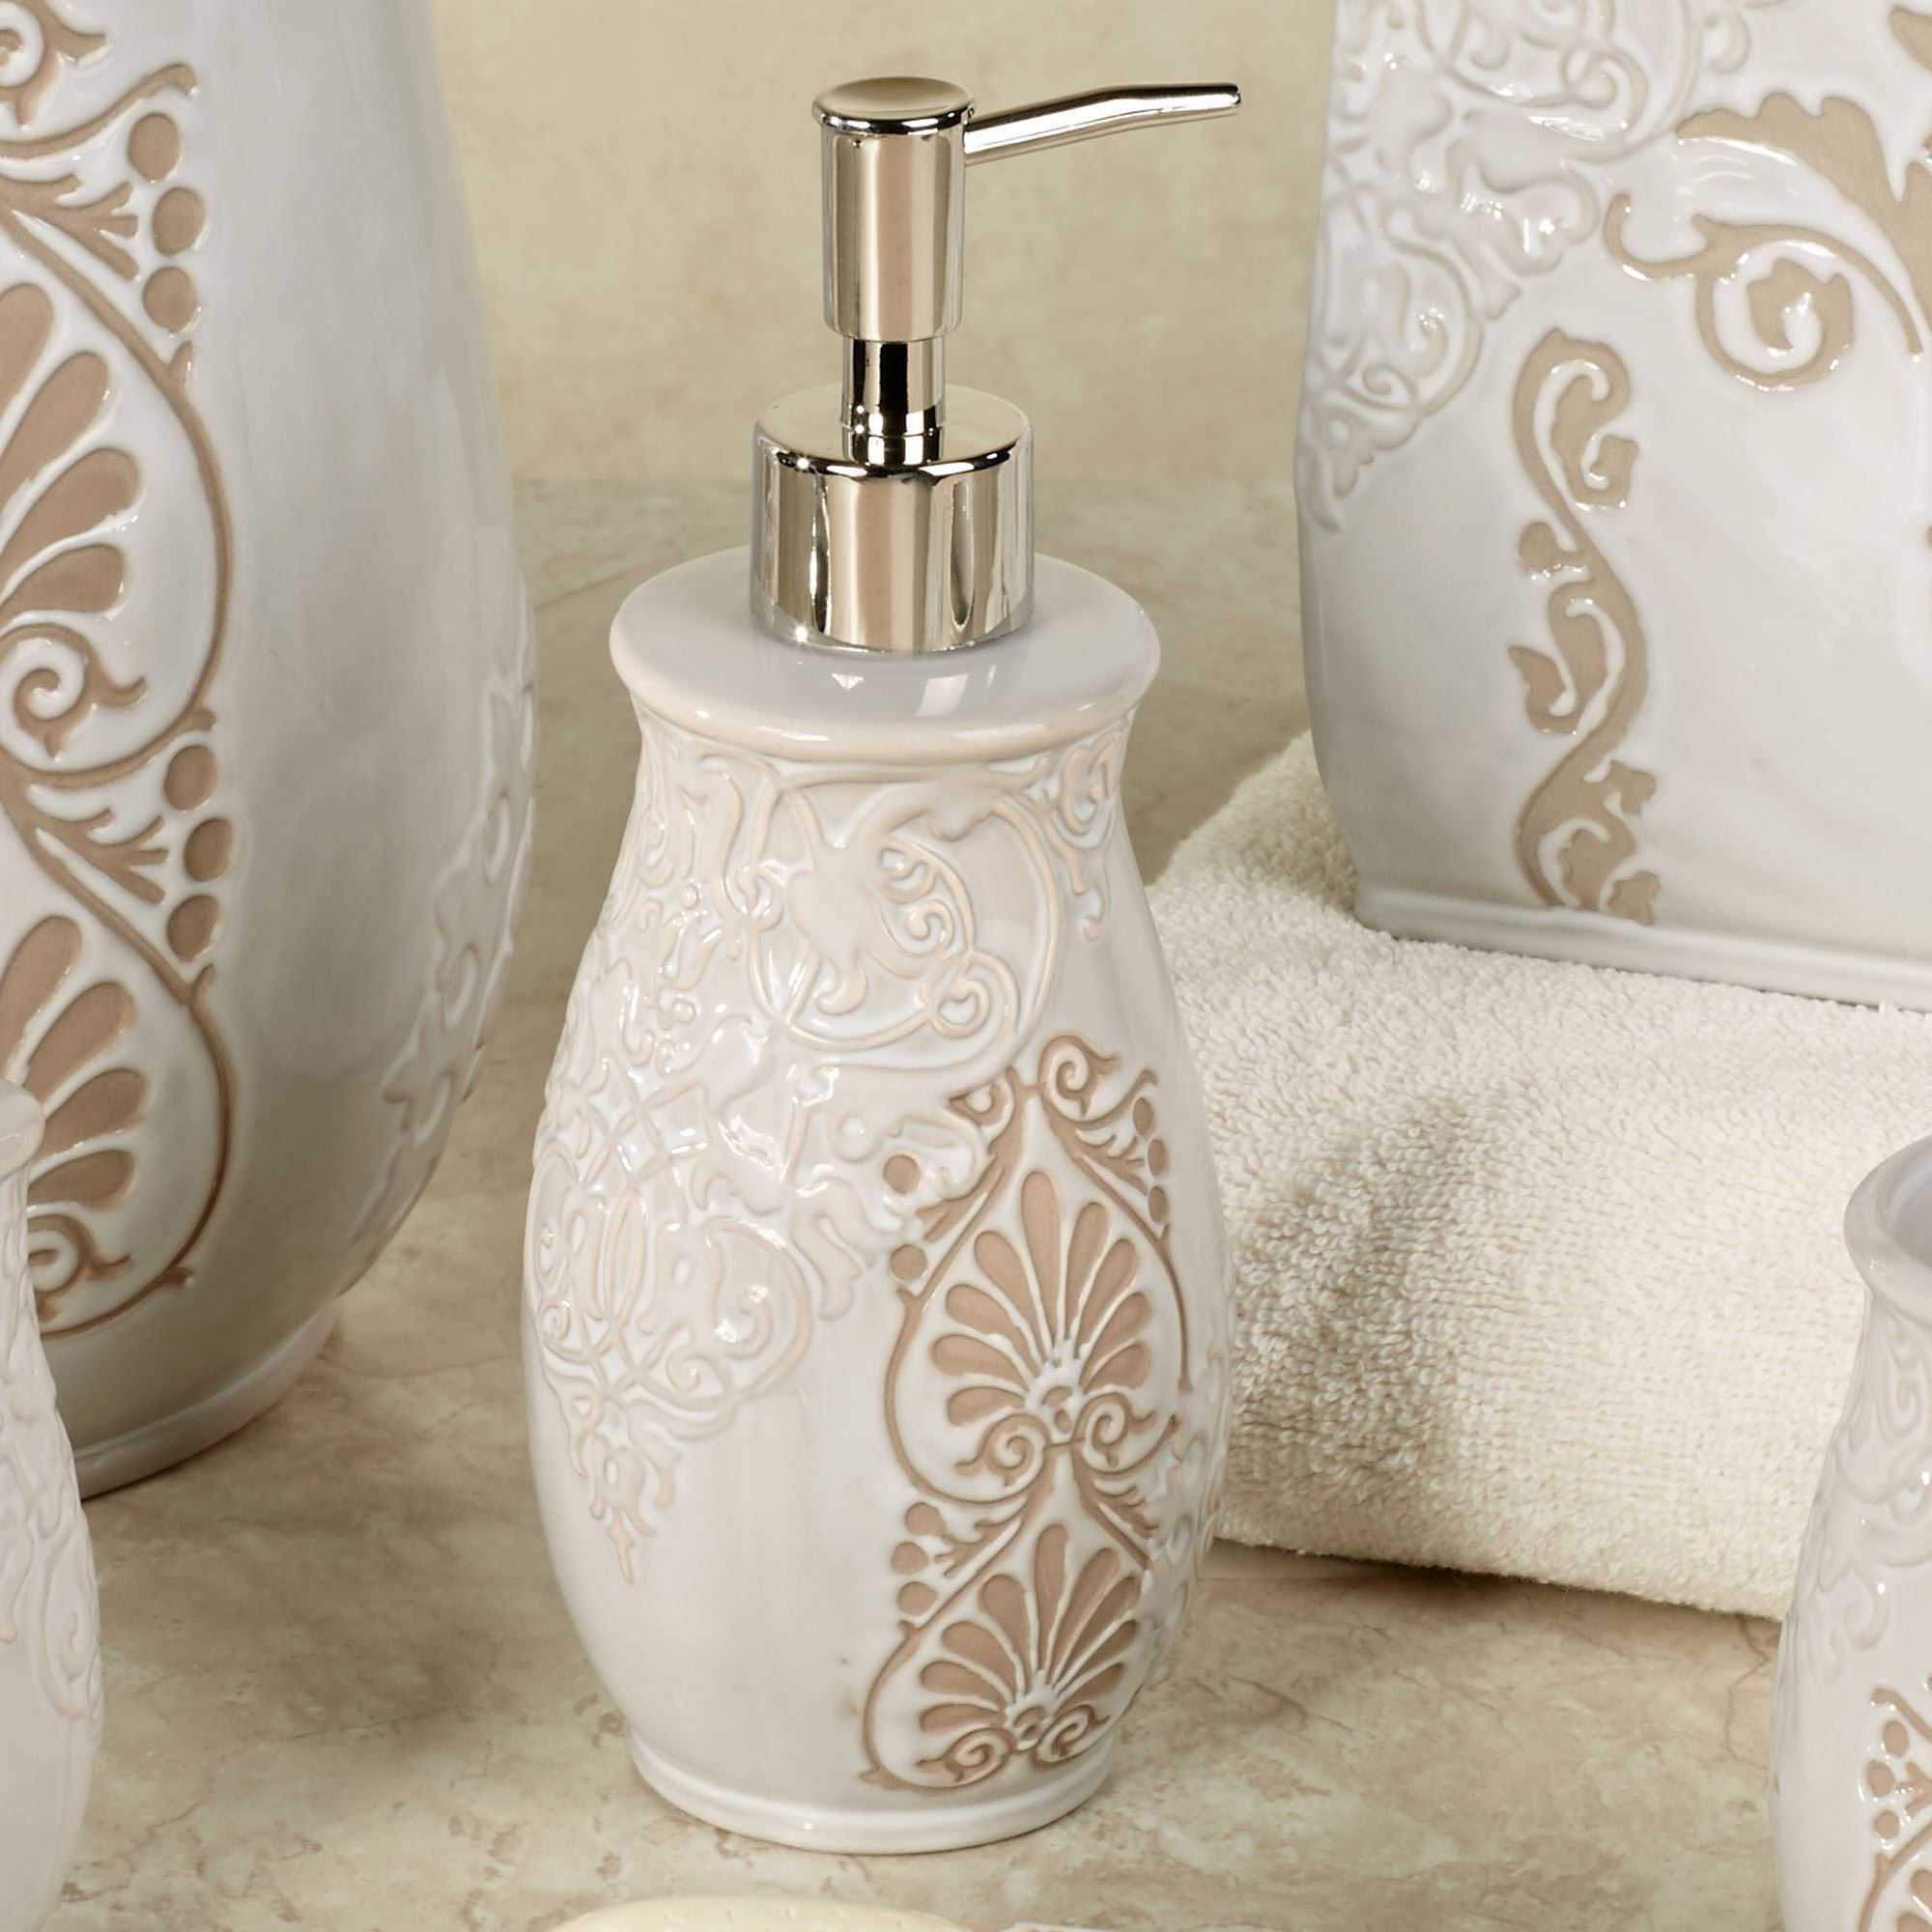 Nicole Miller Bath Accessories Sets Wild At Heart Set And